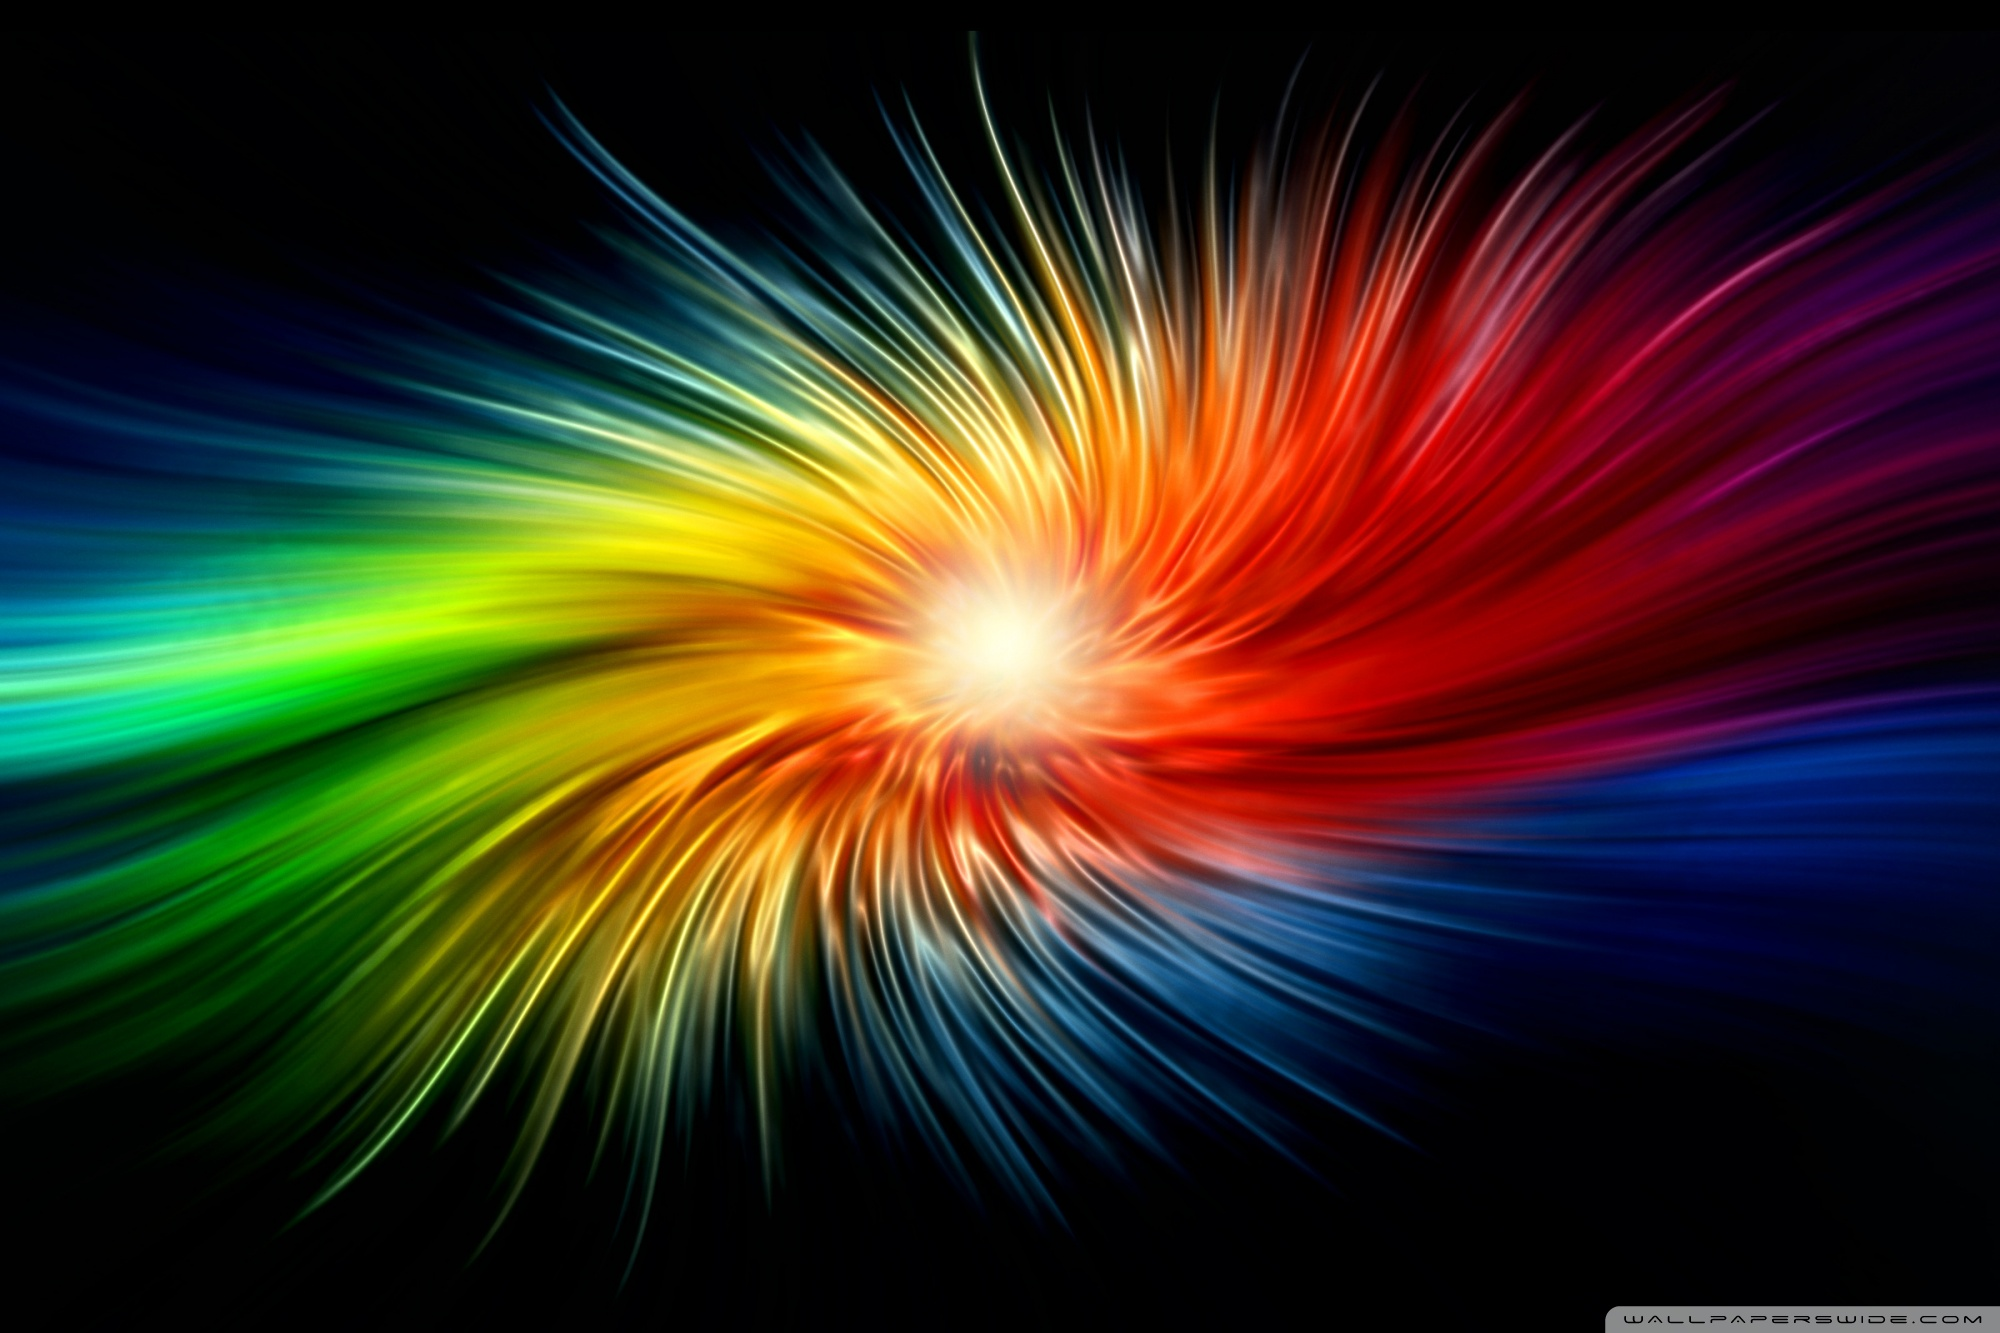 Colors Splash 4K HD Desktop Wallpaper for 4K Ultra HD TV Wide 2000x1333